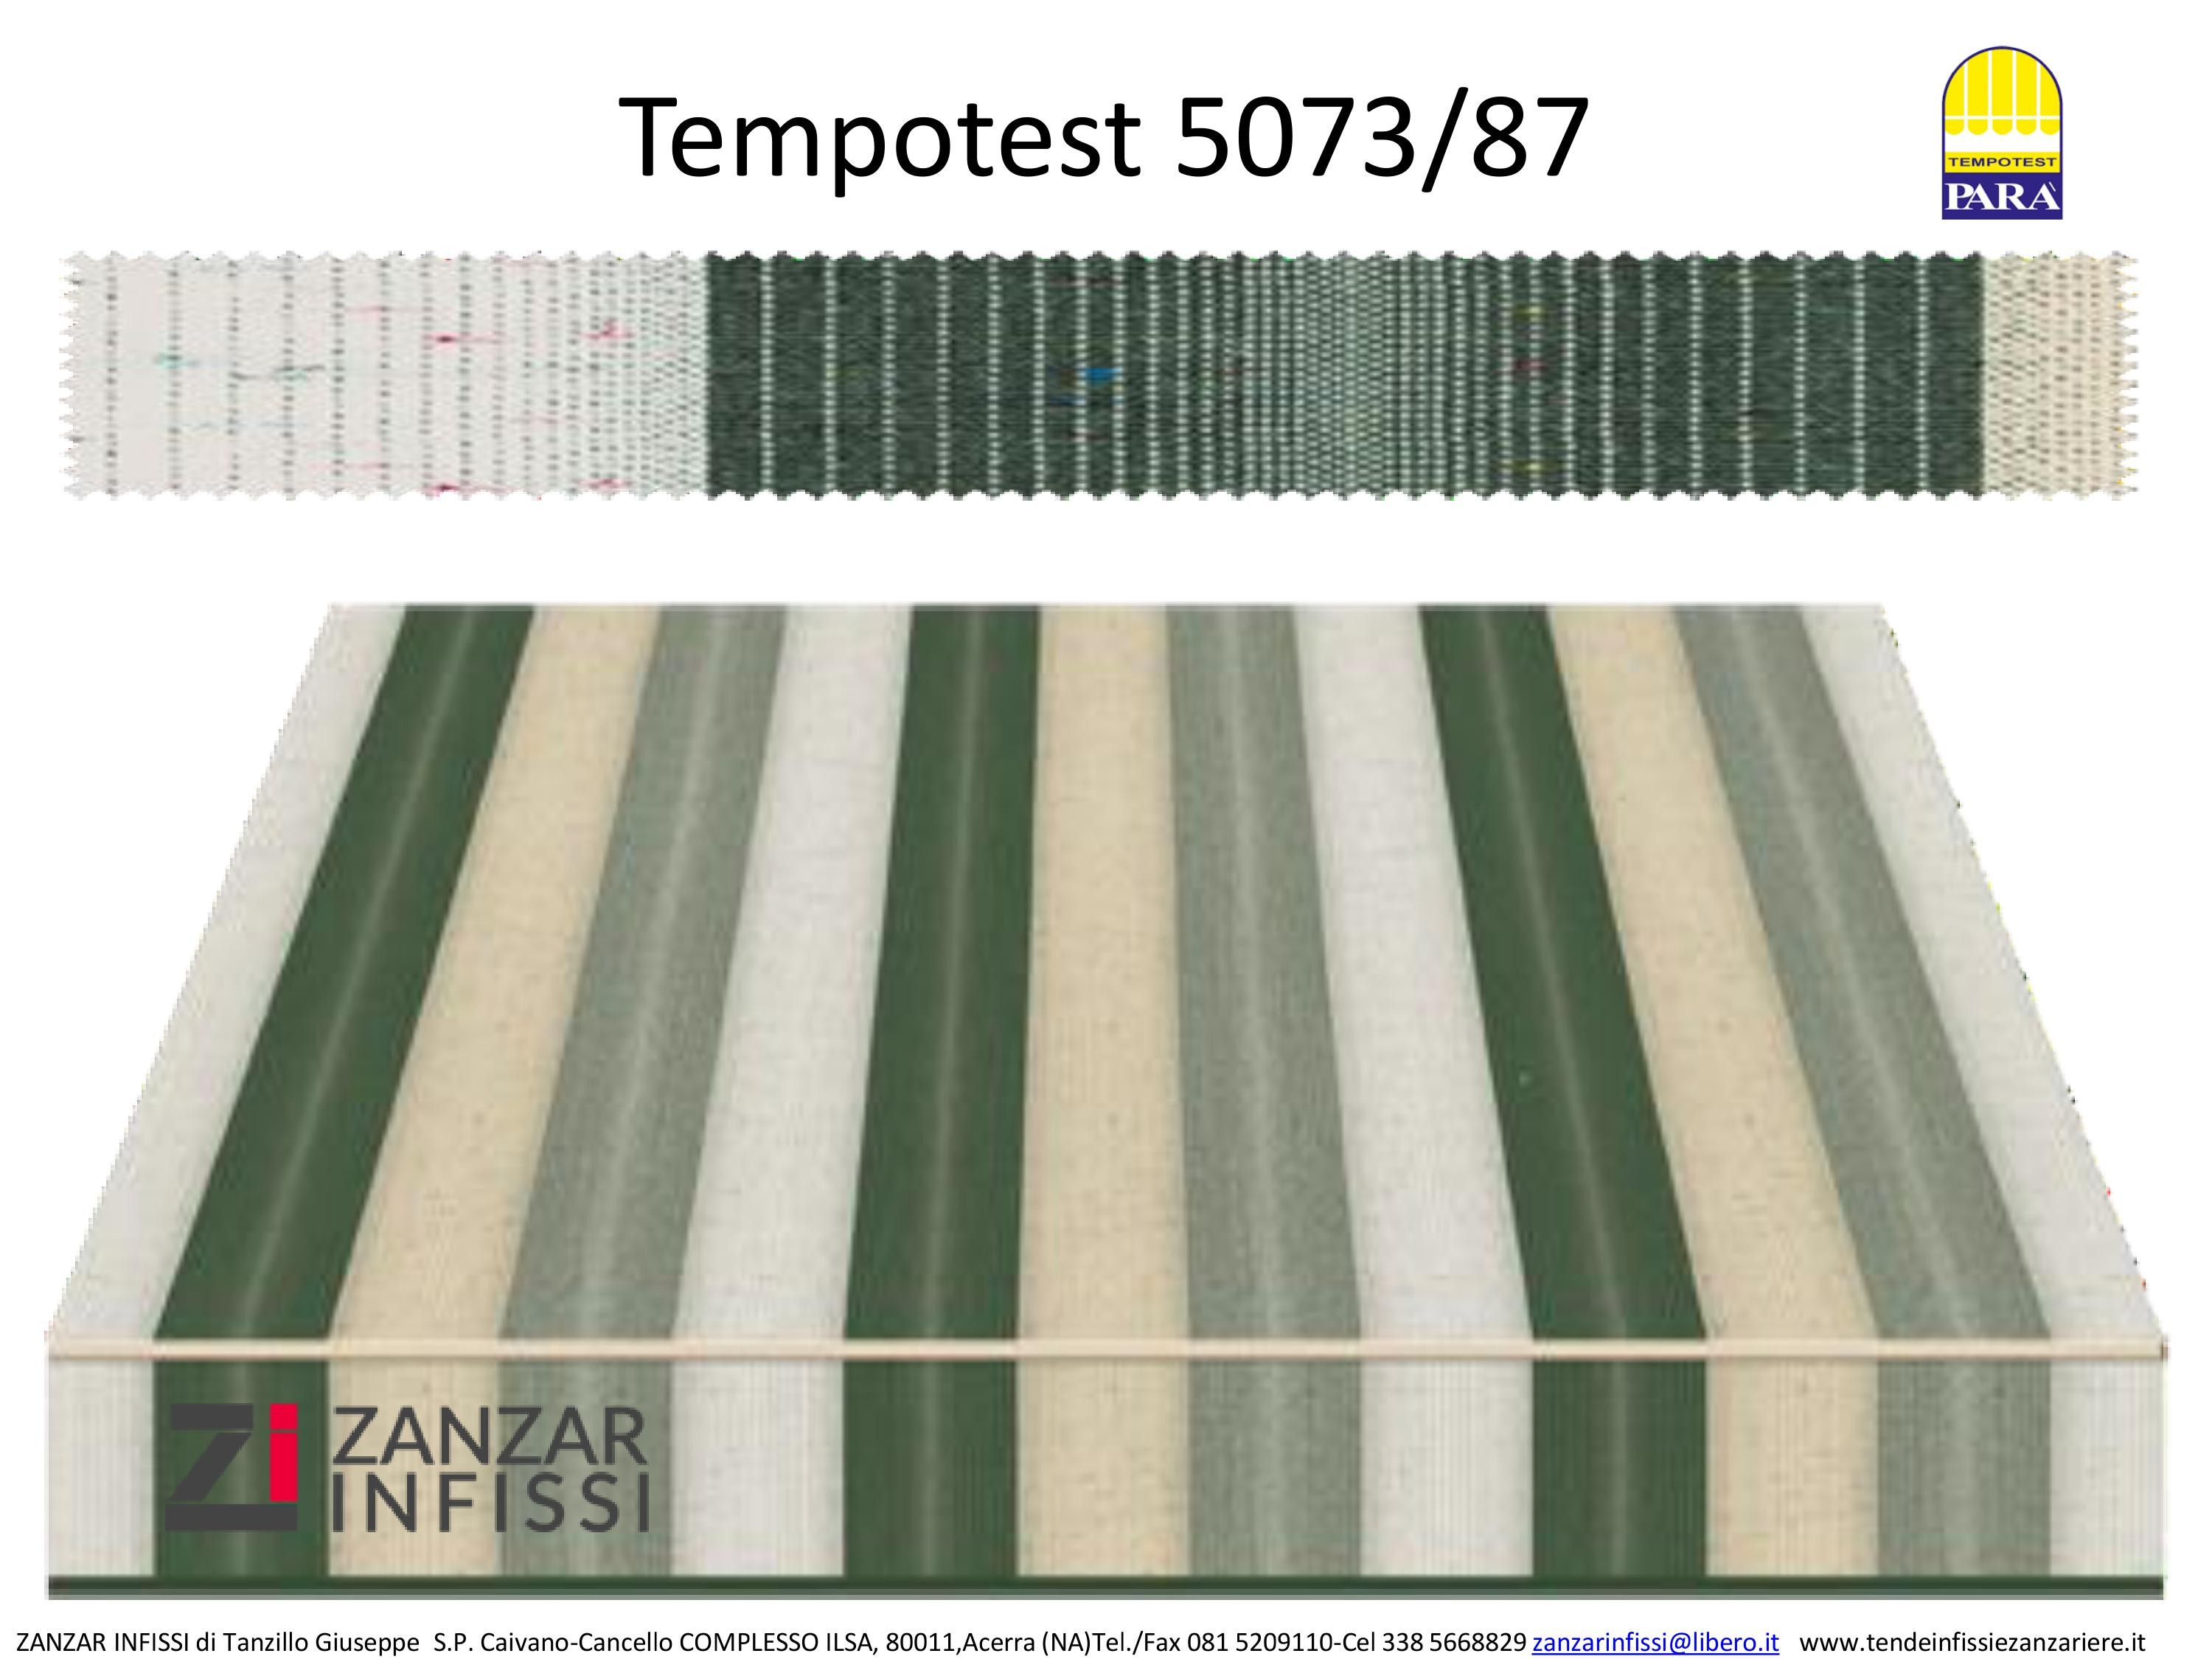 Tempotest 5073/87